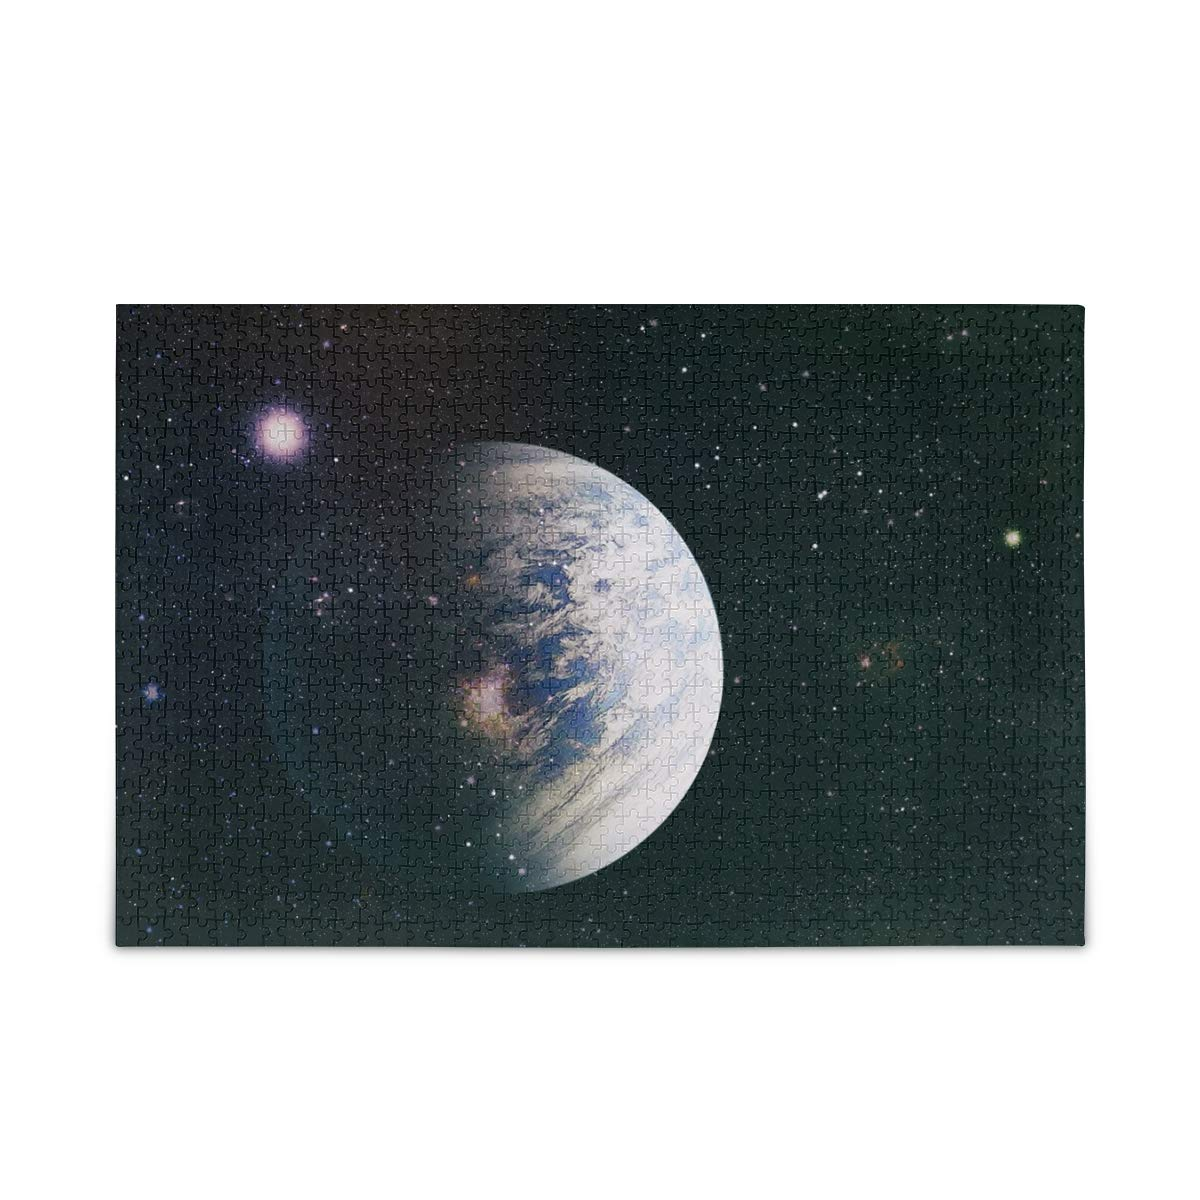 The Earth Puzzle 500 Piece Jigsaw Puzzle Adult – Jigsaw Puzzle(y)